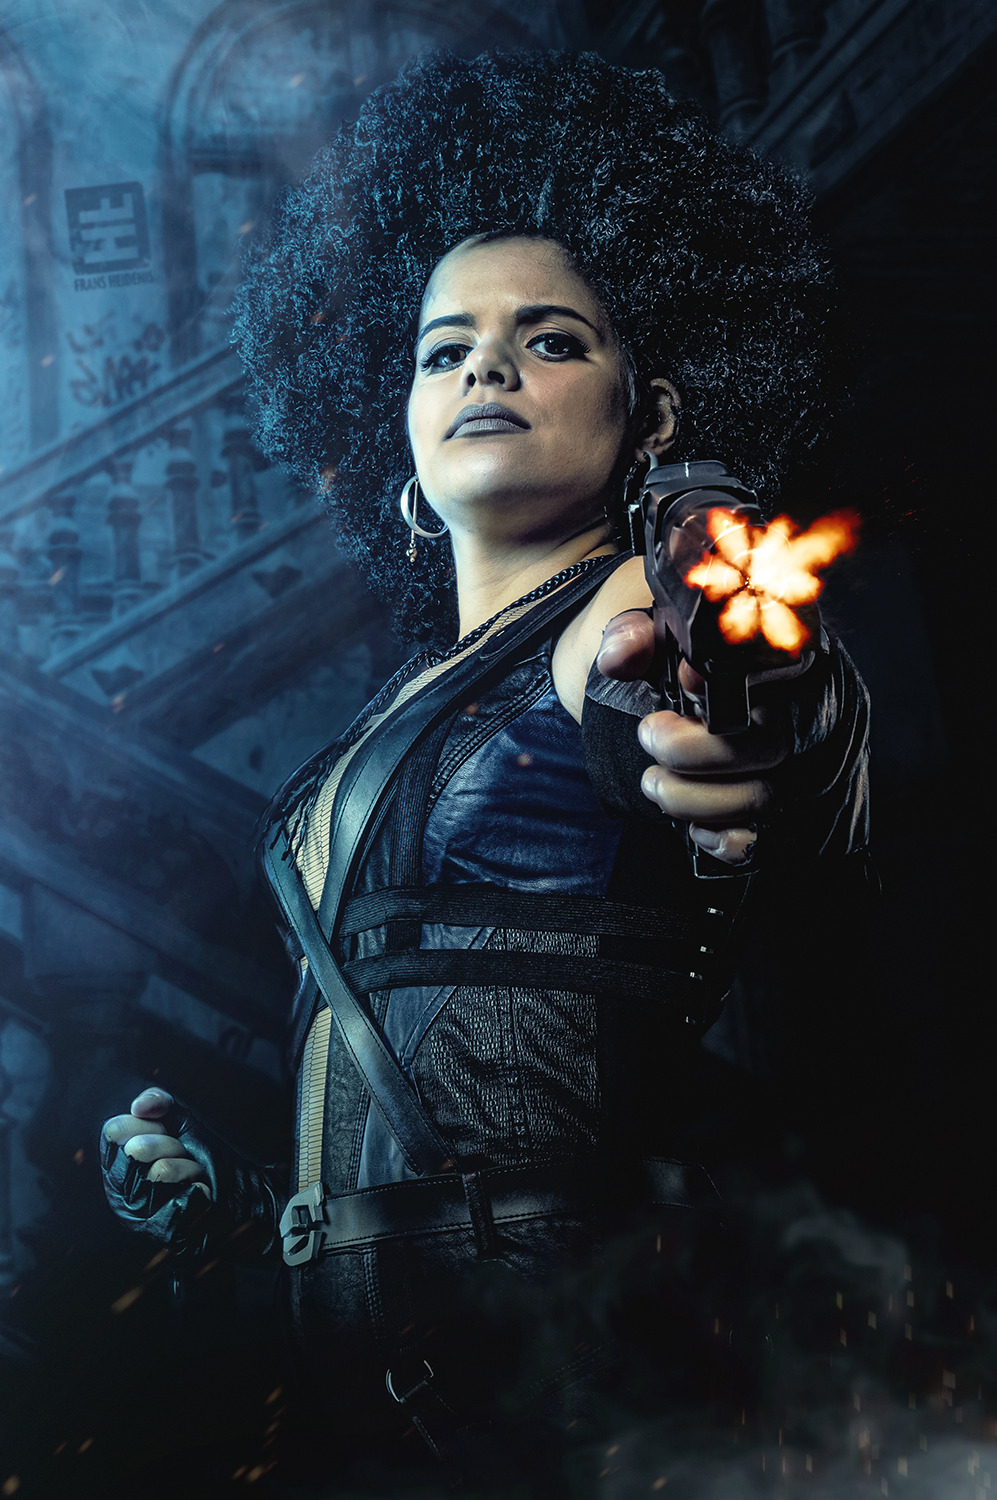 Domino Cosplayer van en uit de film Deadpool 2